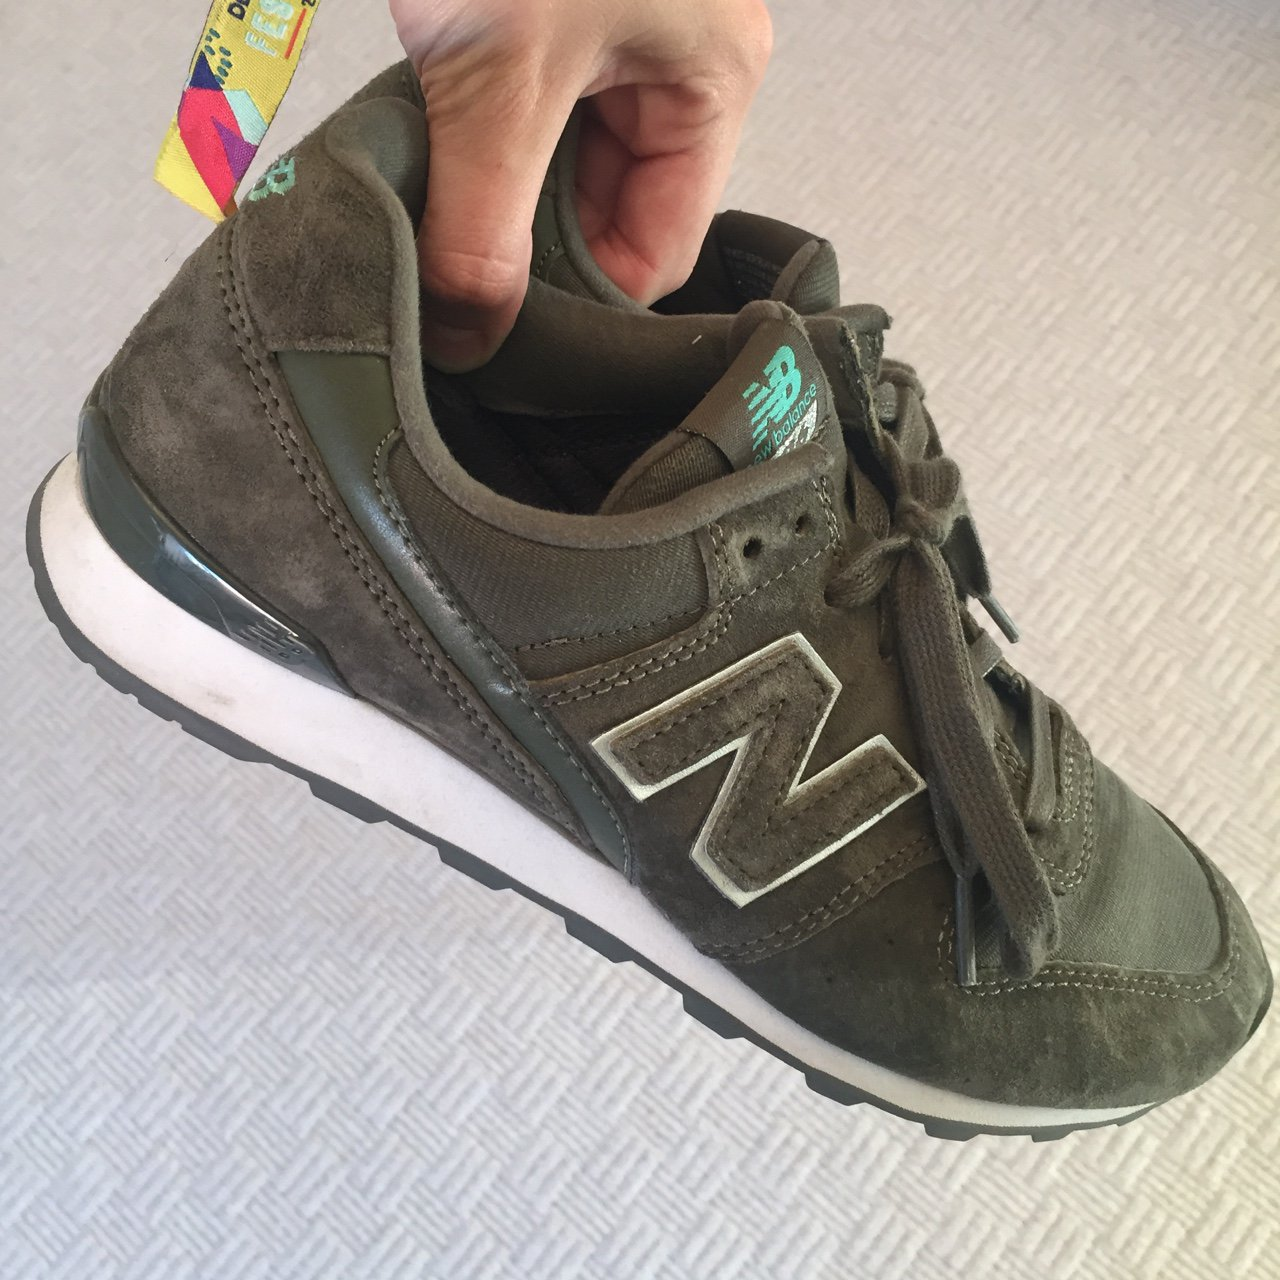 quality design c9658 3015d  milljohnson28. 2 years ago. Nottingham, UK. NEW BALANCE 996. Khaki green  ...